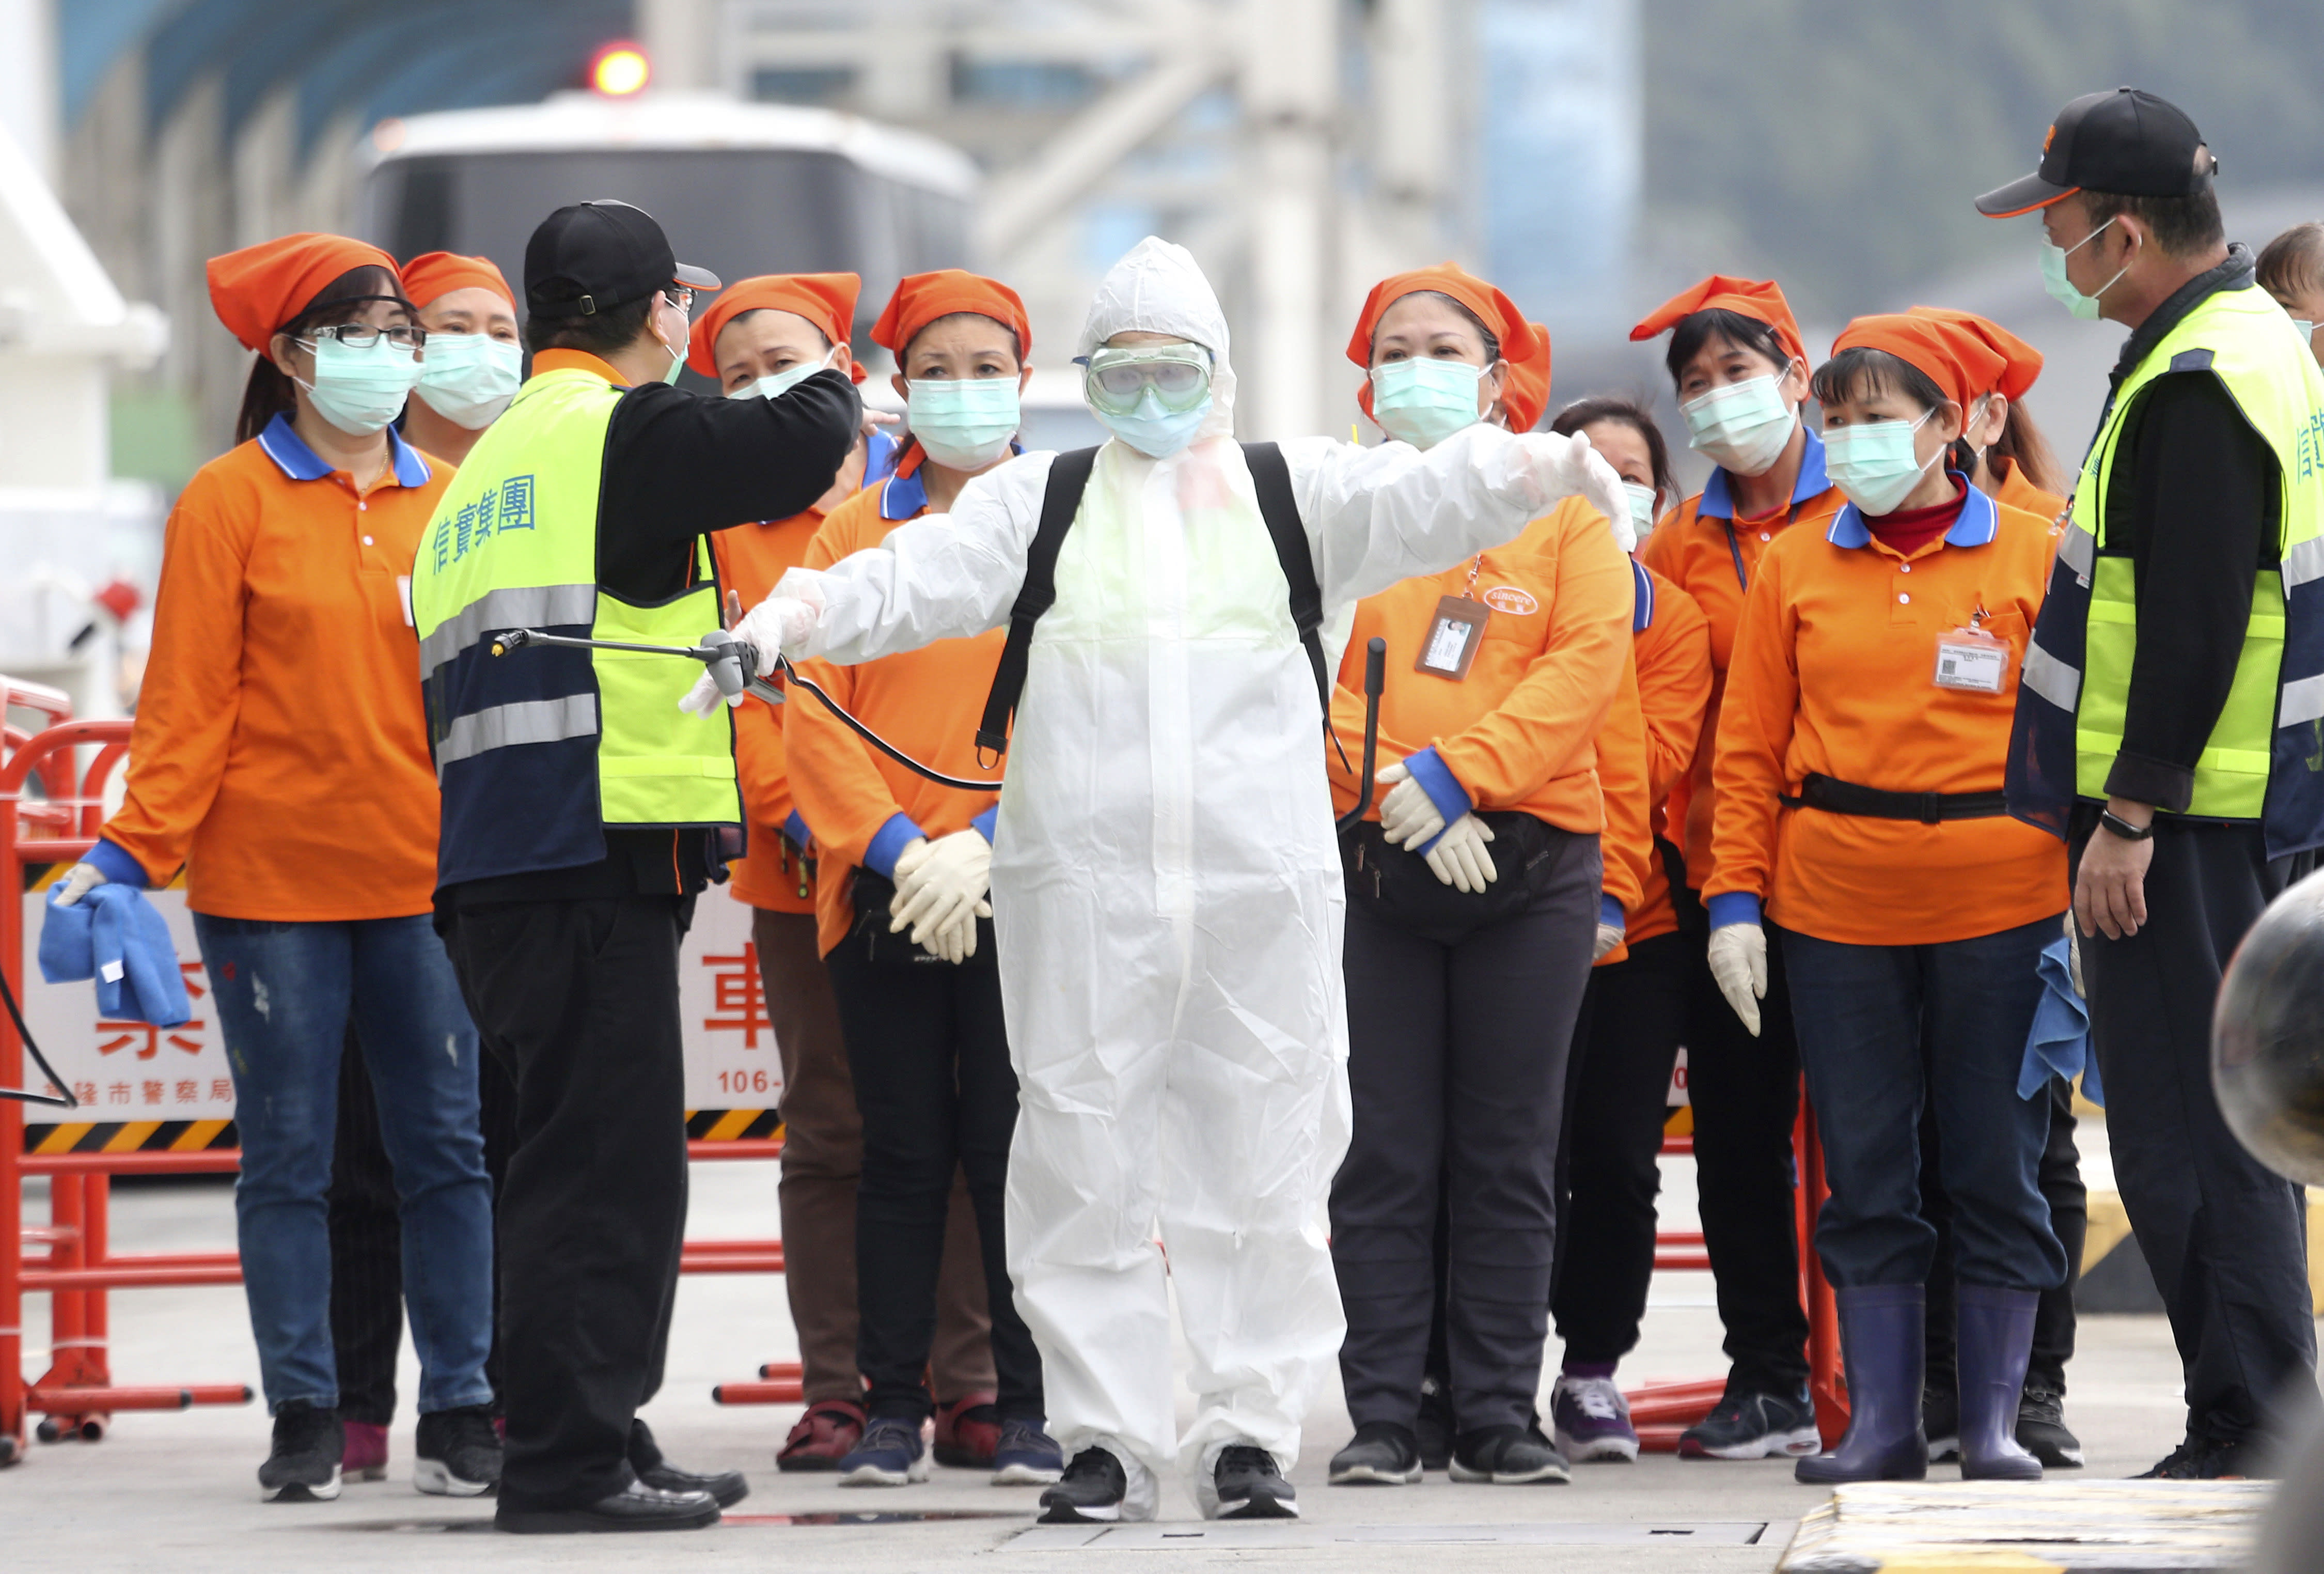 FILE - In this Saturday, Feb, 8, 2020, file photo, an epidemic prevention worker in a protective suit stands by to get on board the cruise ship SuperStar Aquarius which was denied right to dock by Japan over fears of spread of virus and returned to dock at Keelung port in New Taipei City, Taiwan. Taiwan's exclusion from the World Health Organization is pitting health concerns against geopolitics during the current crisis over a new virus. Taiwan has called repeatedly for it to be allowed to participate in WHO, from which it has been barred by China. So strong is China's diplomatic pressure that Taiwan can no longer take part in the organization's annual World Health Assembly, even as an observer. (AP Photo/Chiang Ying-ying, File)